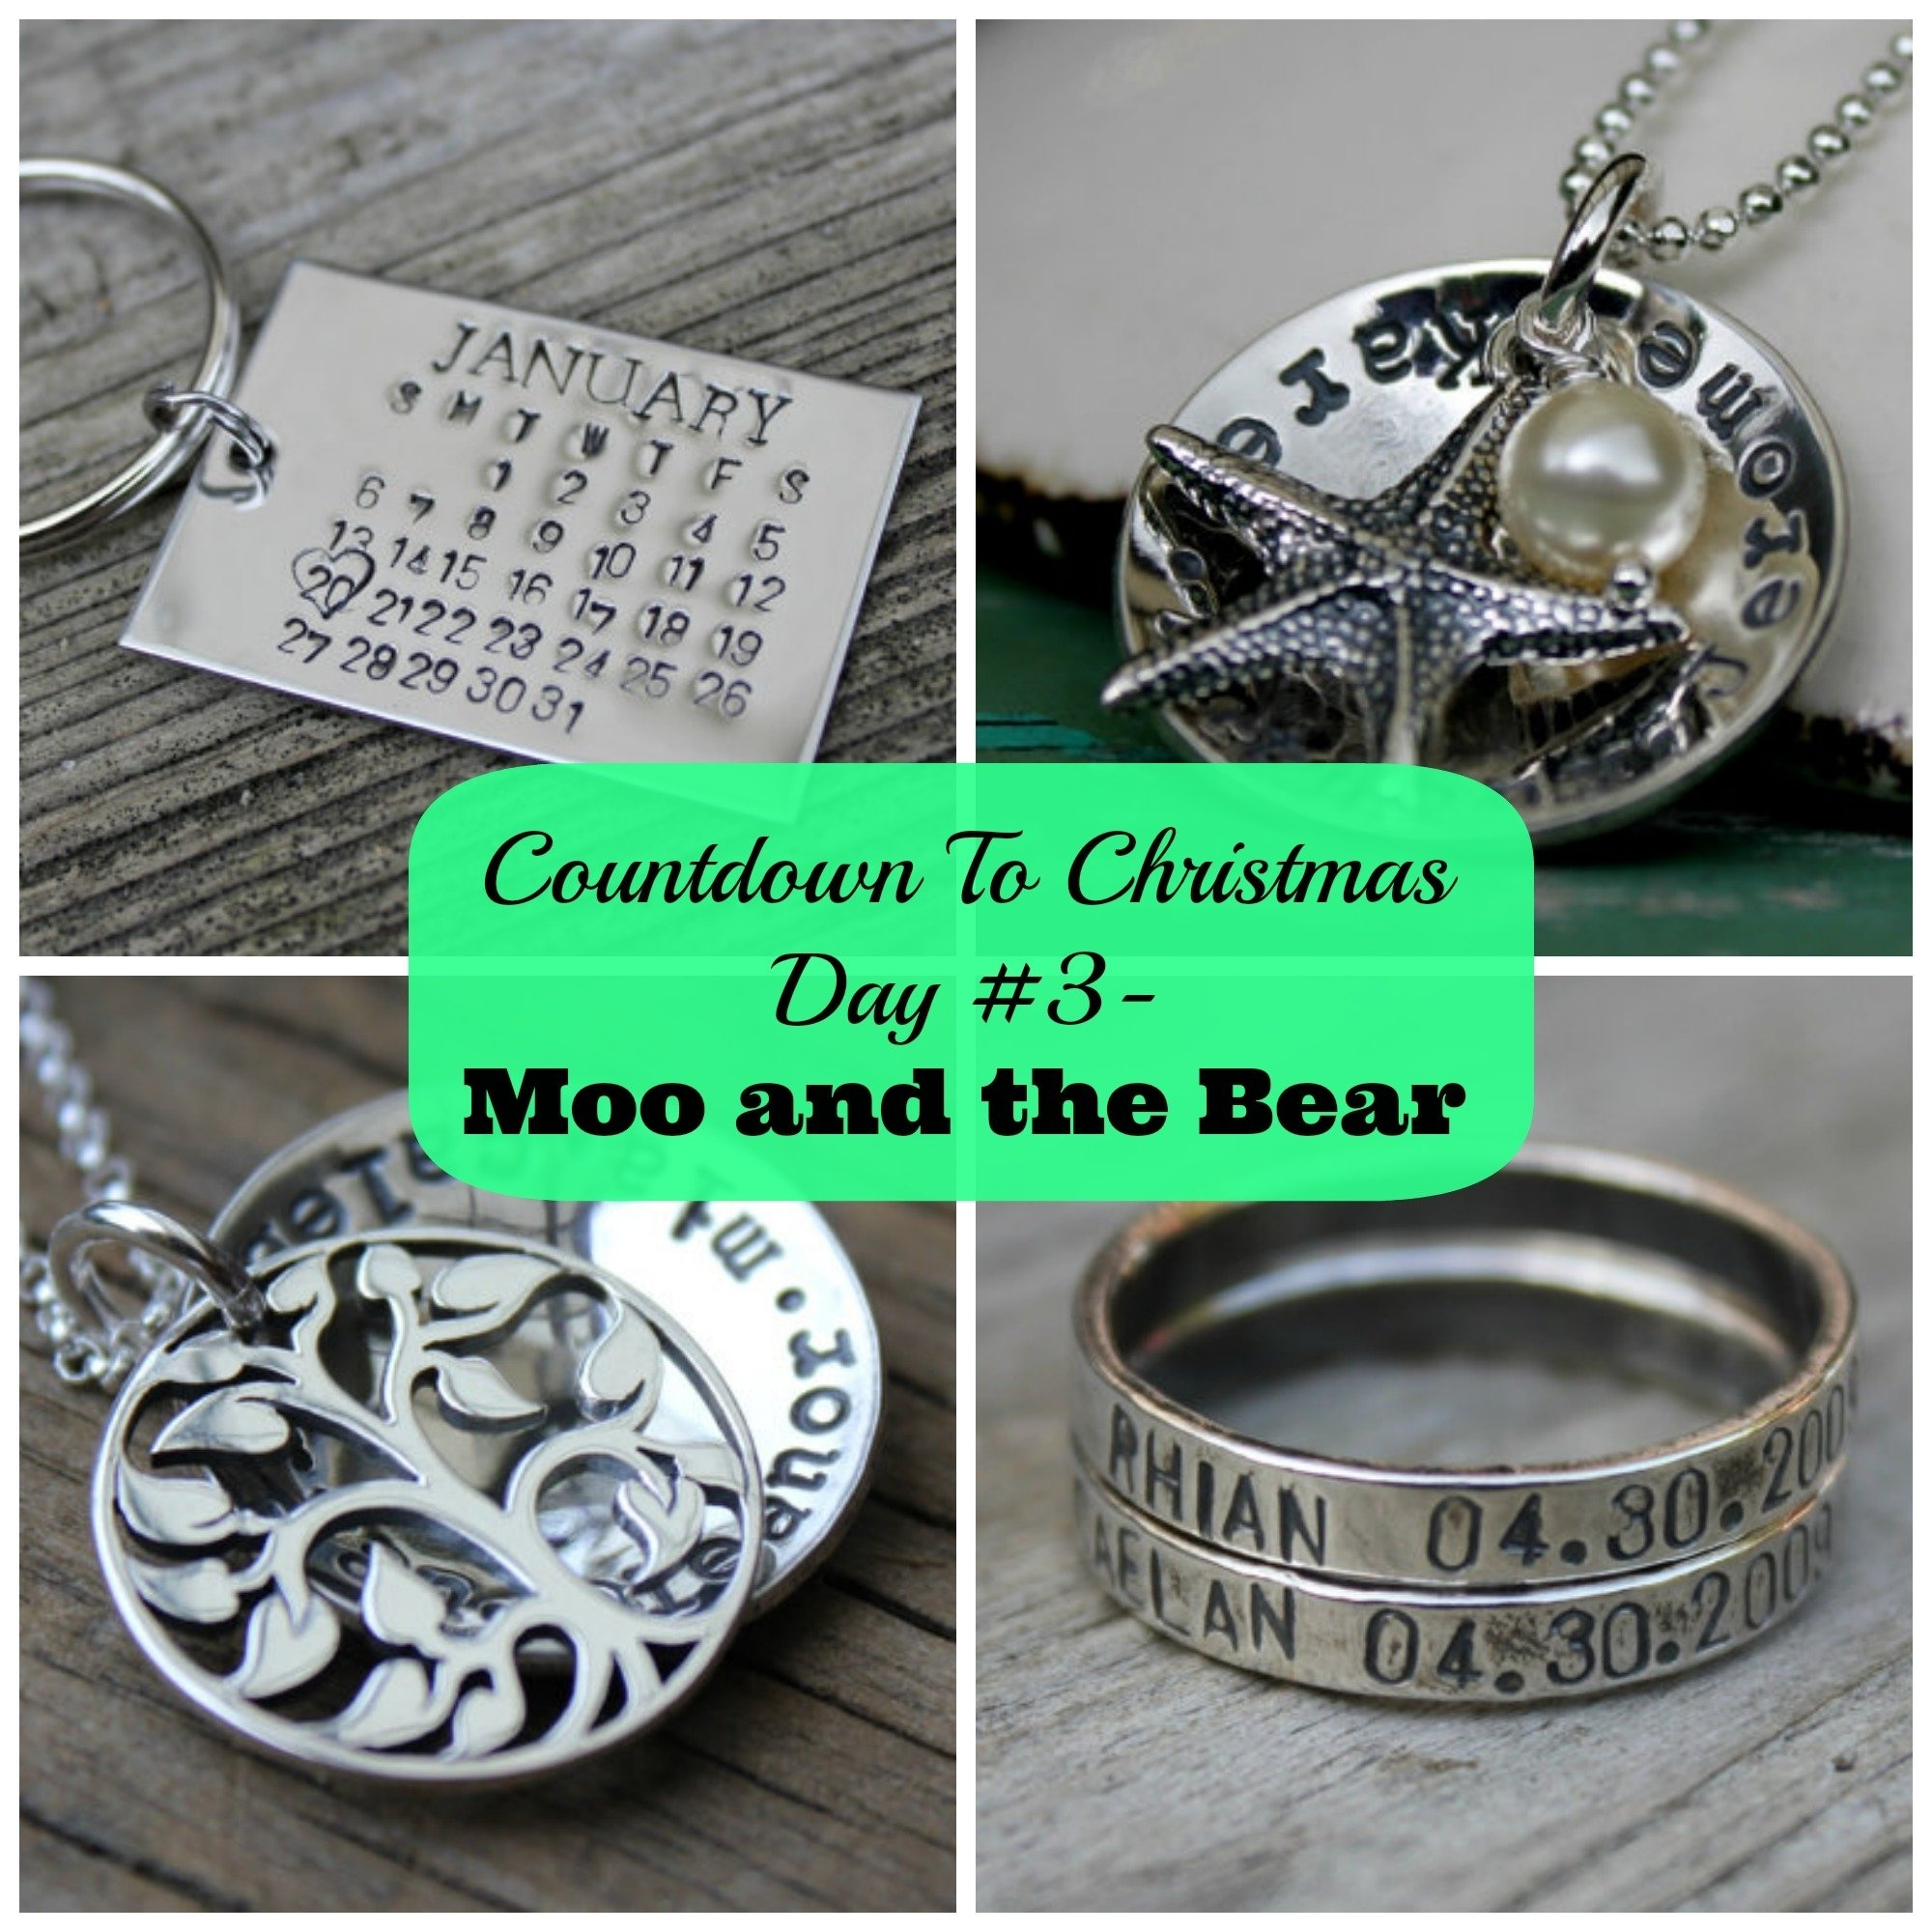 10 Nice Christmas Gifts Ideas For Boyfriend countdown to christmas day 3 moo and the bear gifts for her and 5 2020